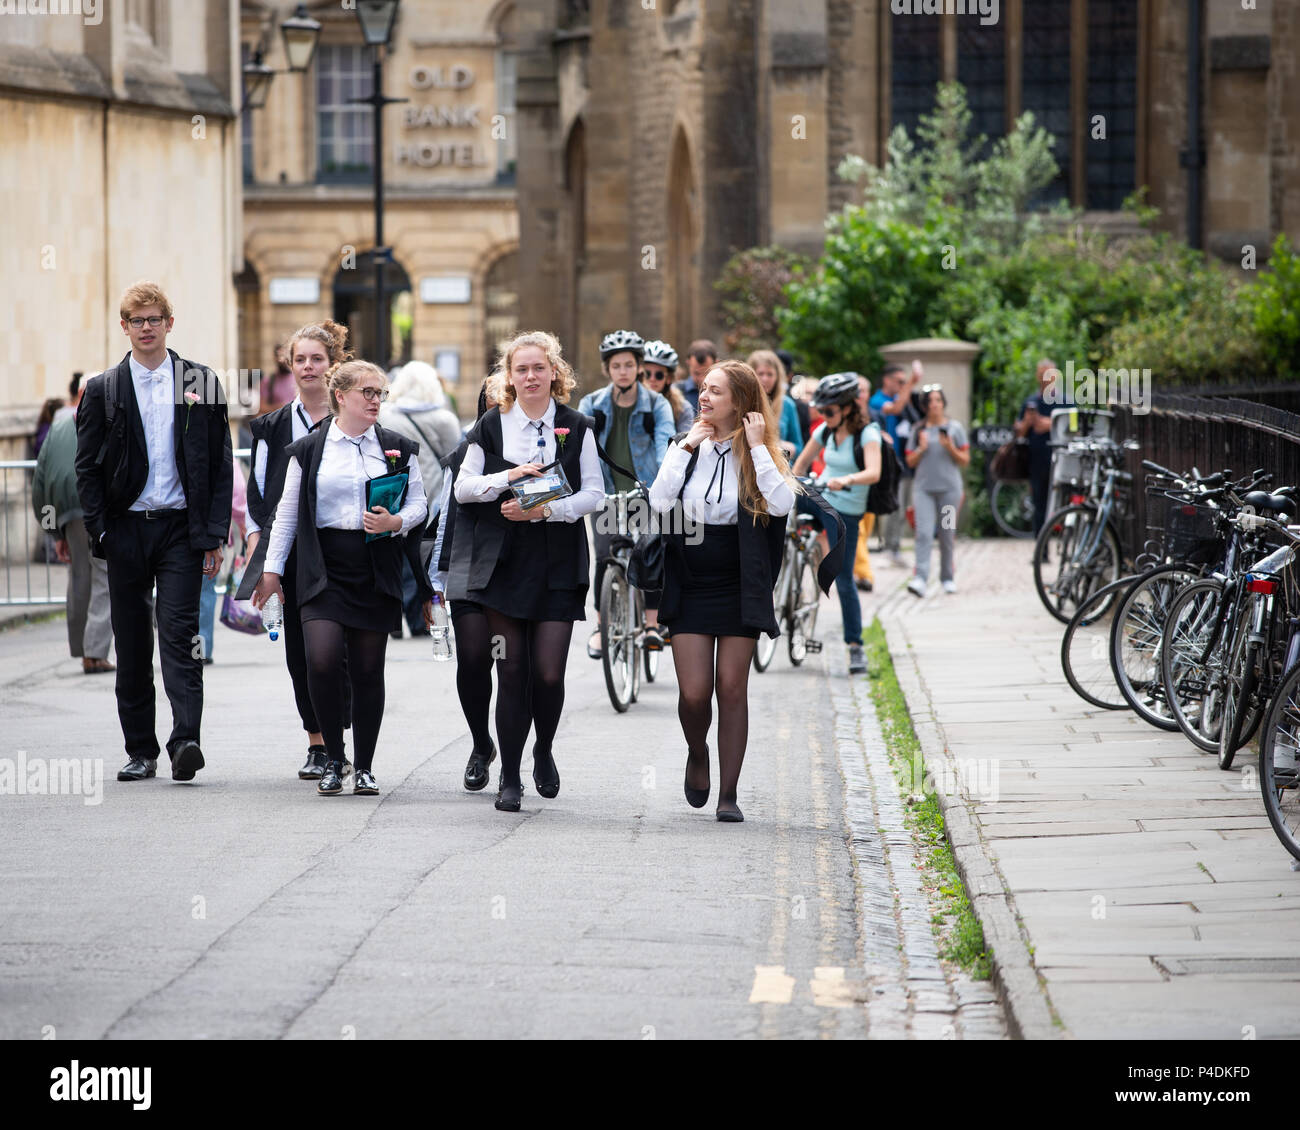 Students at Oxford University wearing tradional 'sub fusc' garments which are compulsory when taking exams. Carnations denote course year. - Stock Image